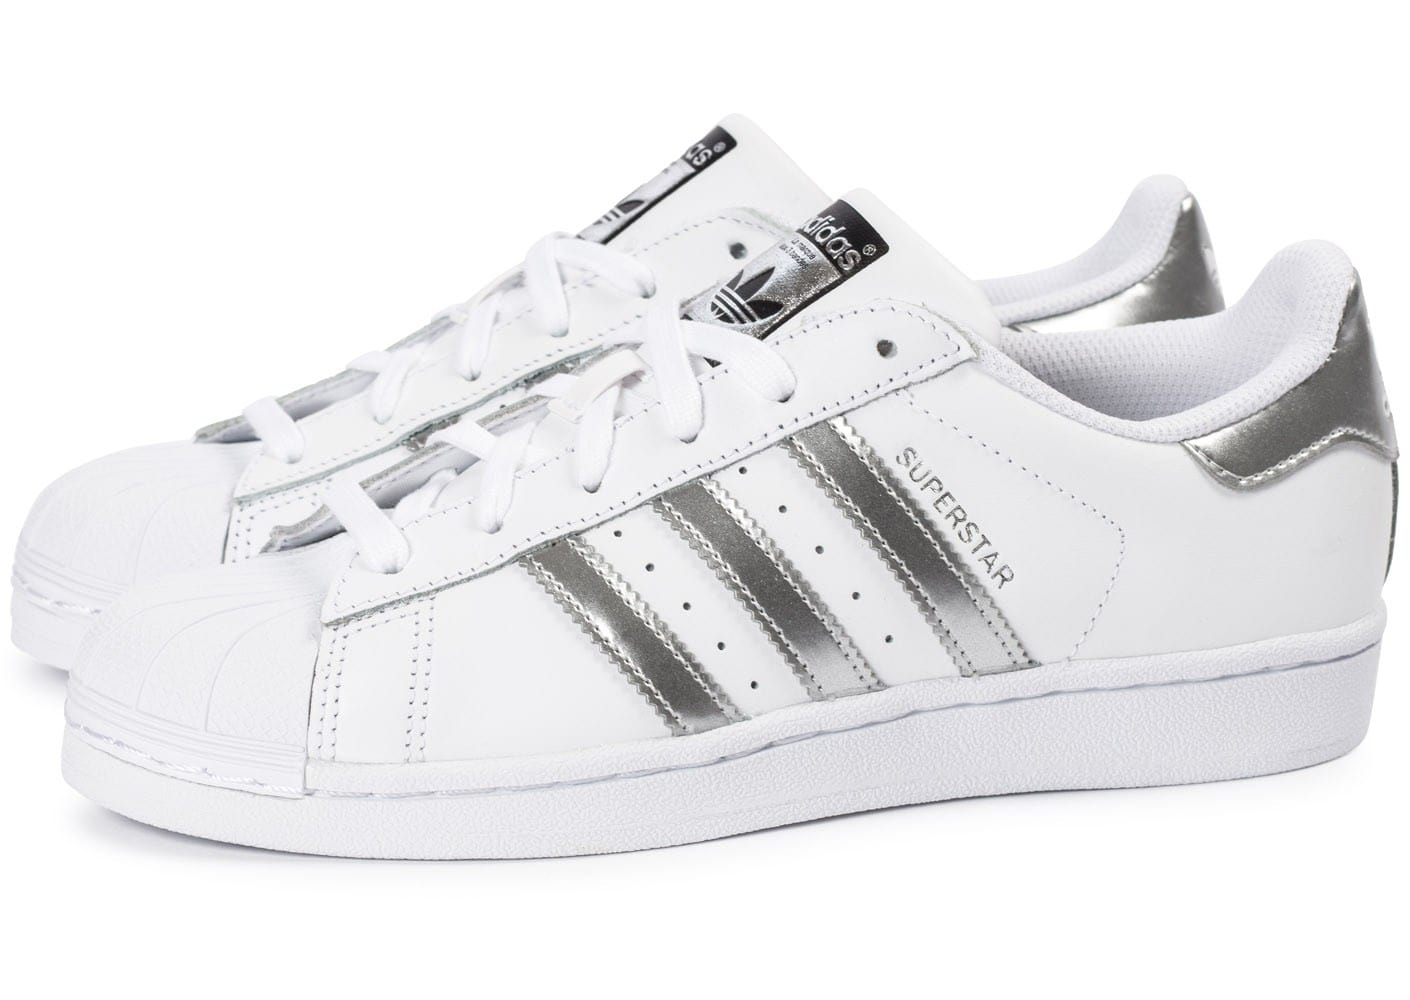 adidas superstar blanc argent chaussures adidas chausport. Black Bedroom Furniture Sets. Home Design Ideas